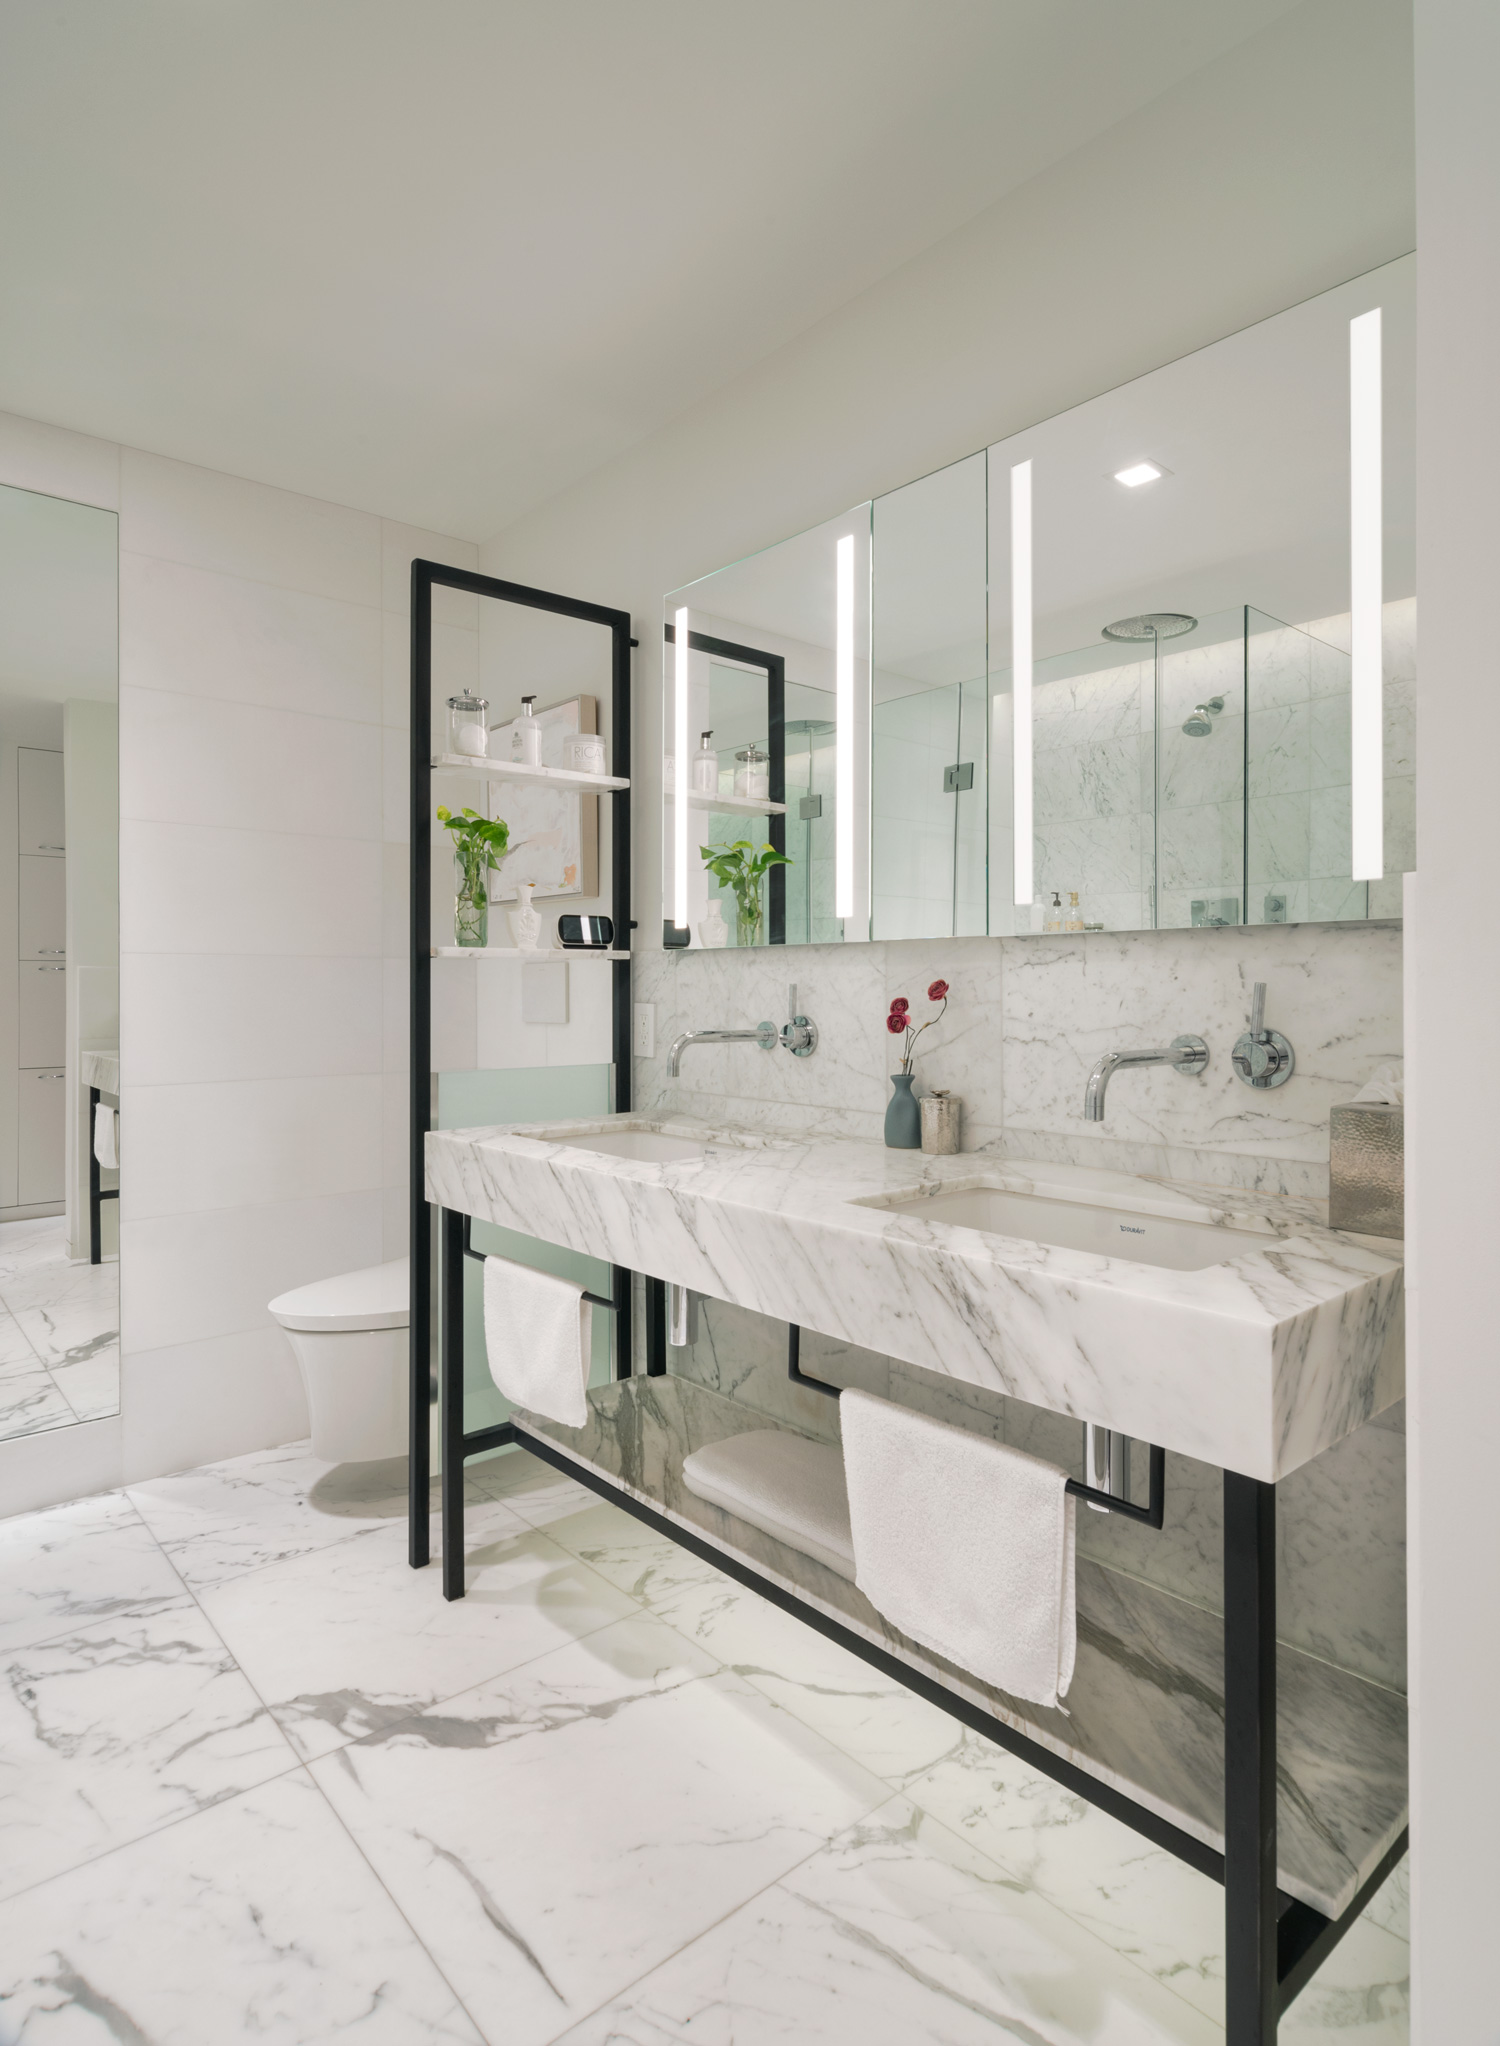 new-york-architect-adi-gershoni-master-bathroom-5.jpg